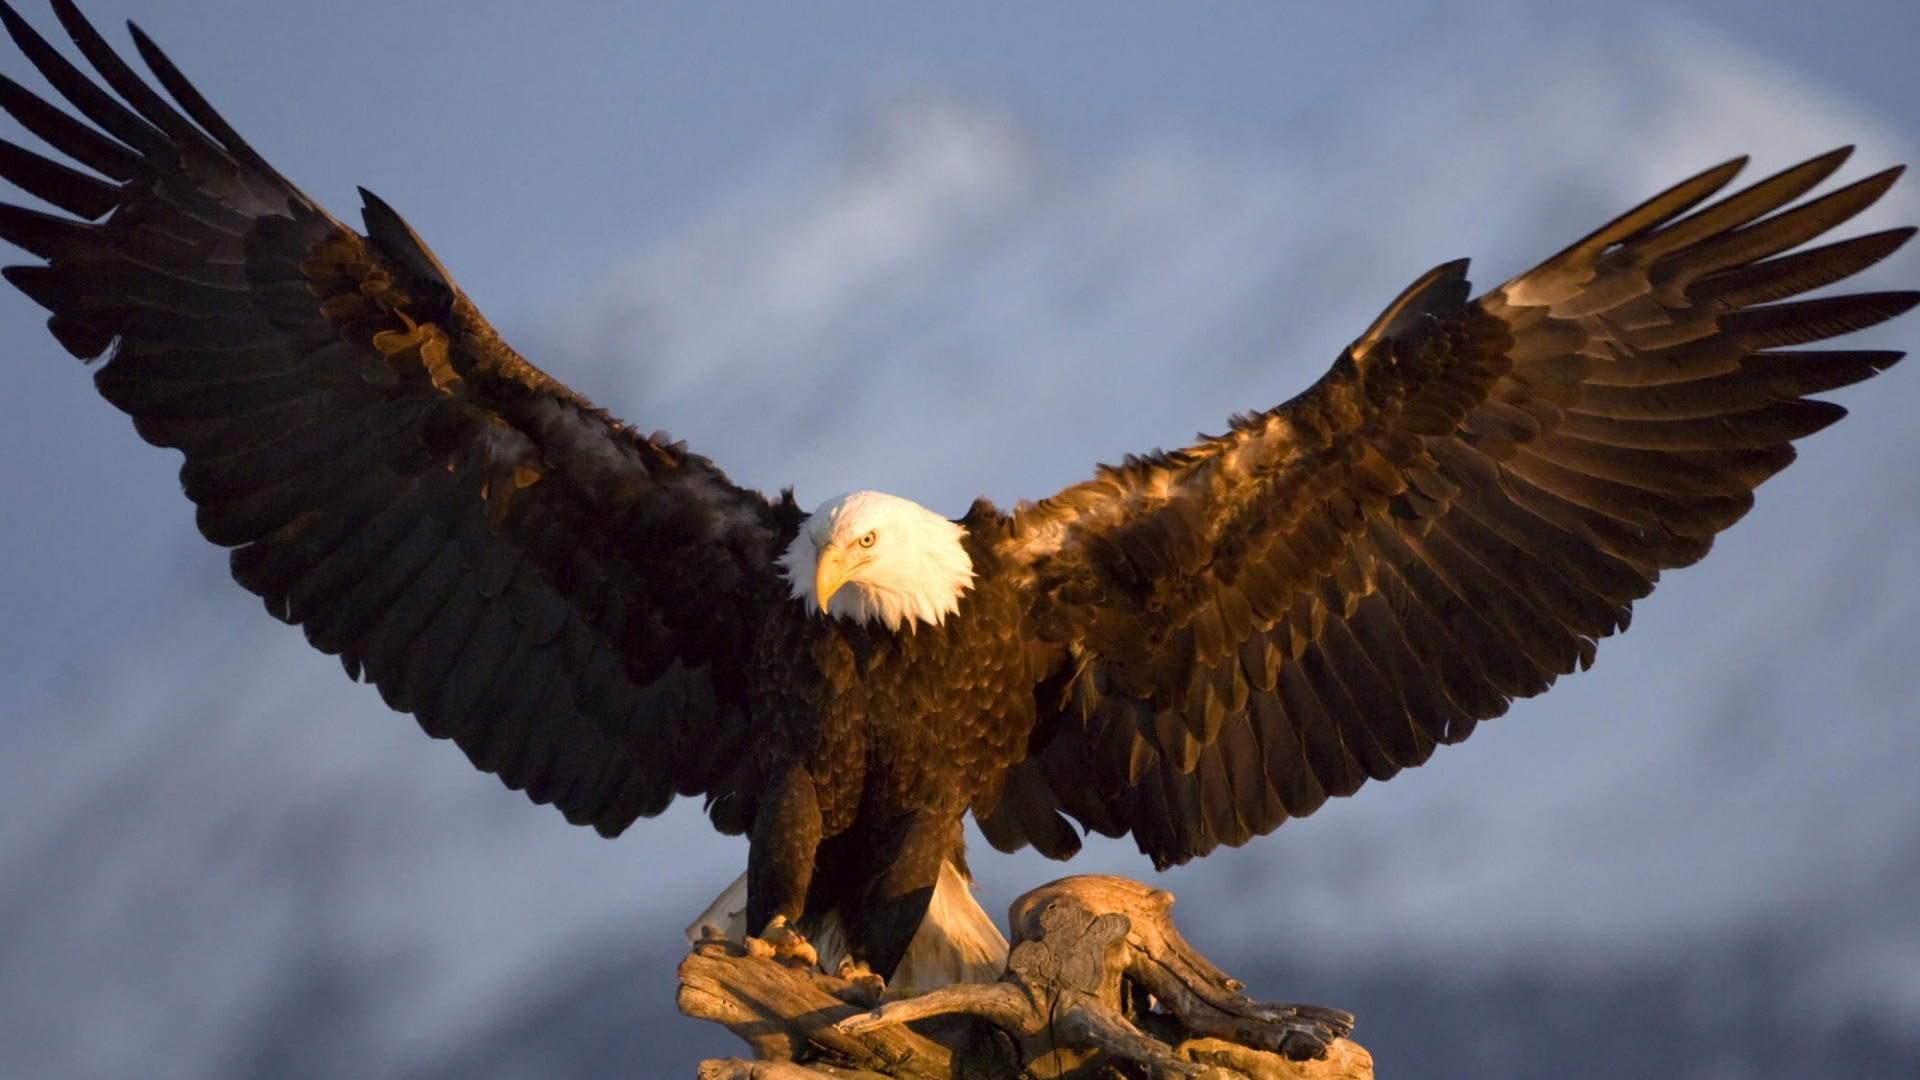 Hd wallpaper eagle - Bald Eagle Hd Wallpapers Pictures Images Backgrounds Photos